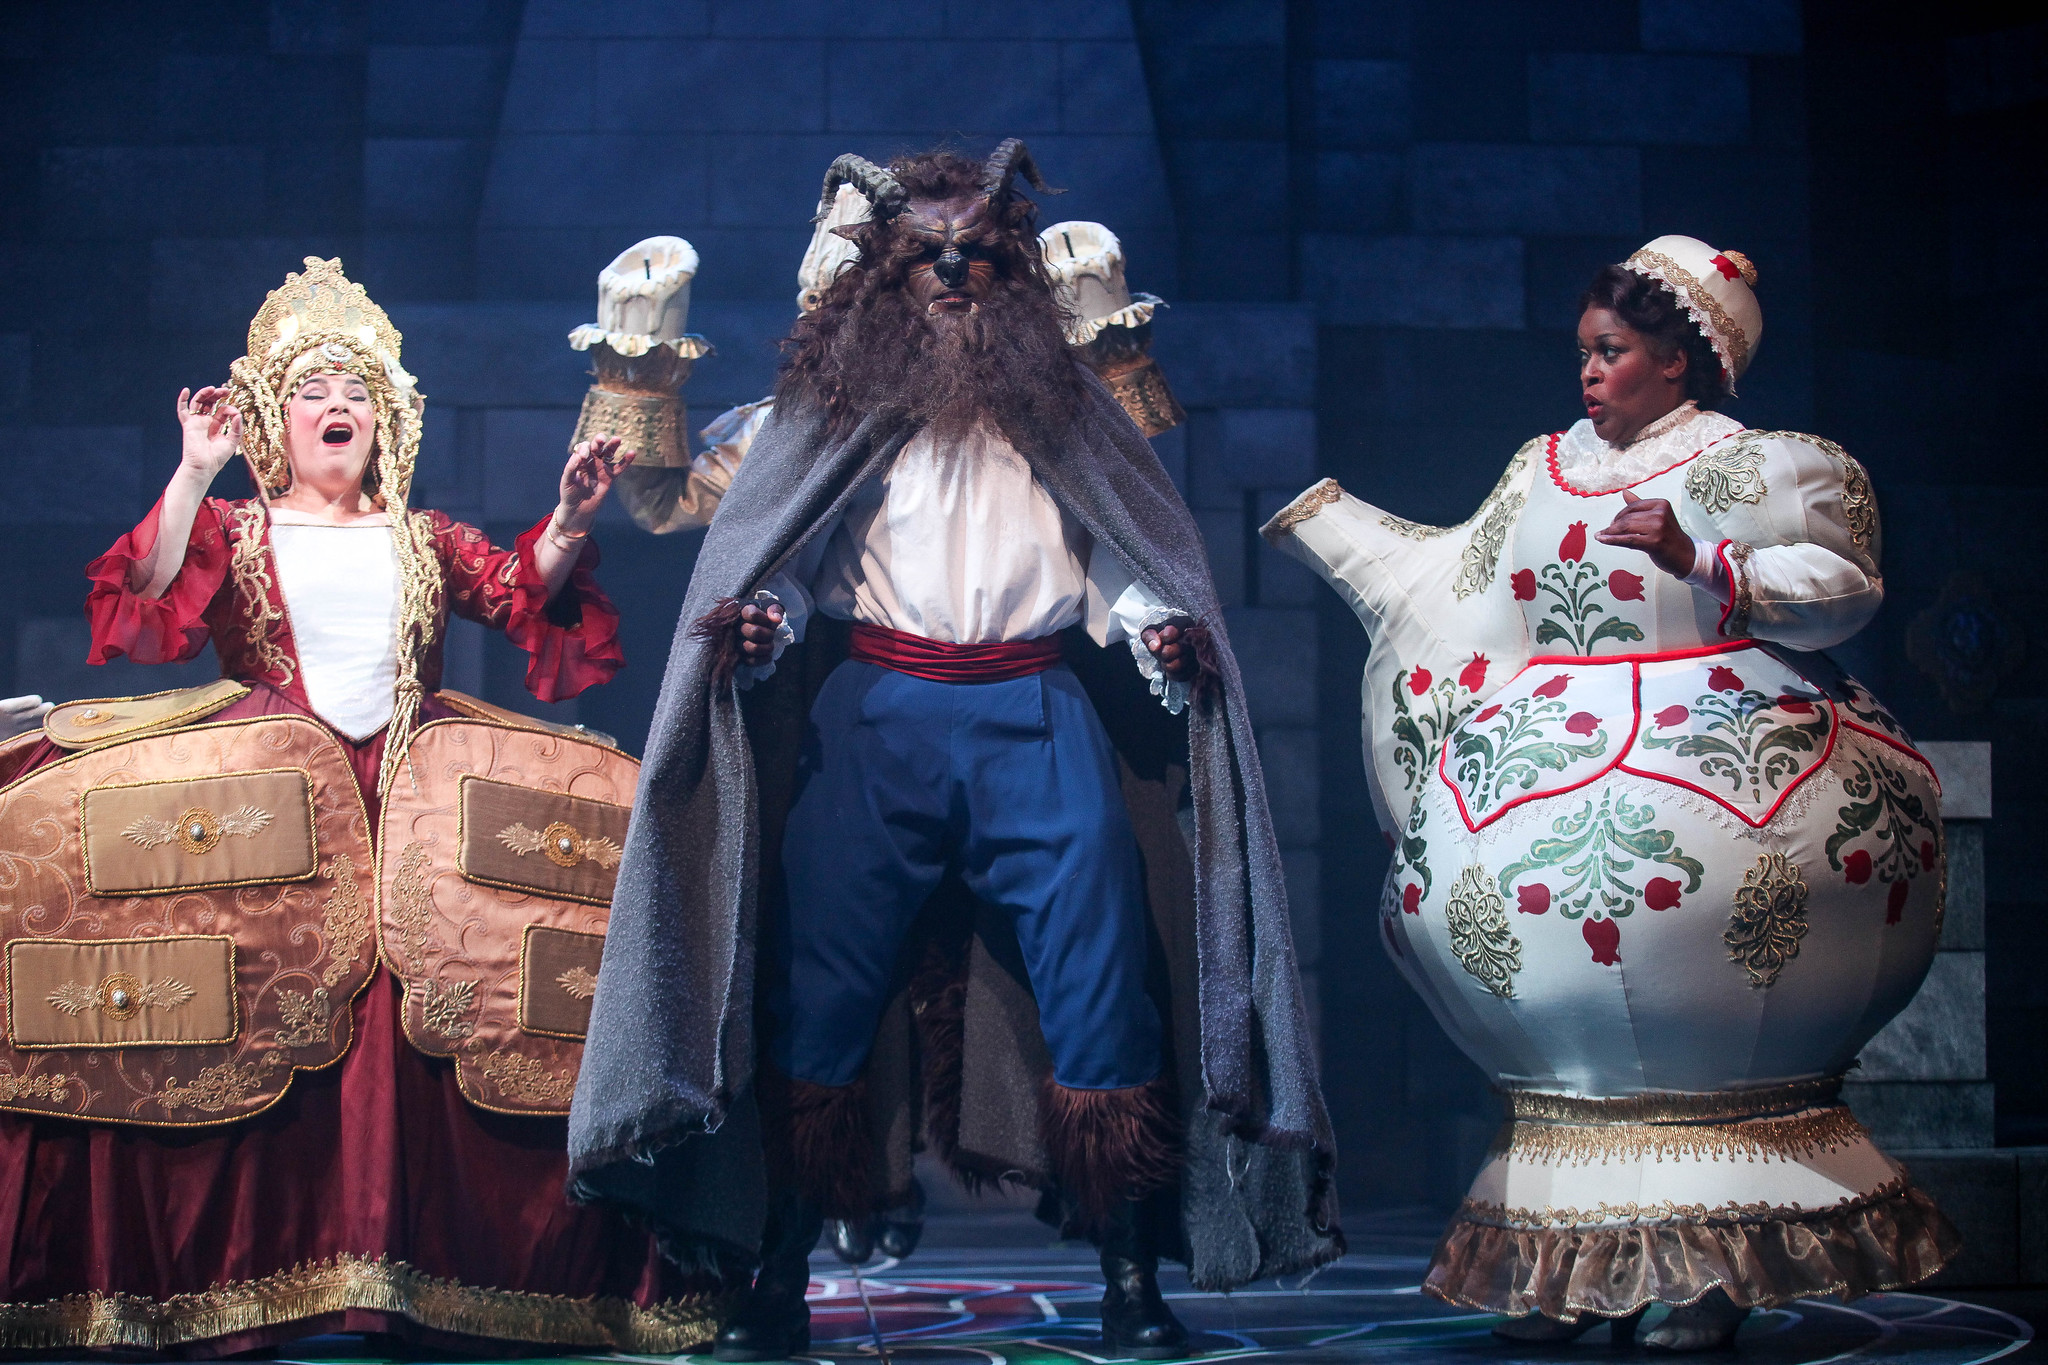 Syracuse Stage S Disney S Beauty And The Beast Delivers High Quality Entertainment Review Syracuse Com